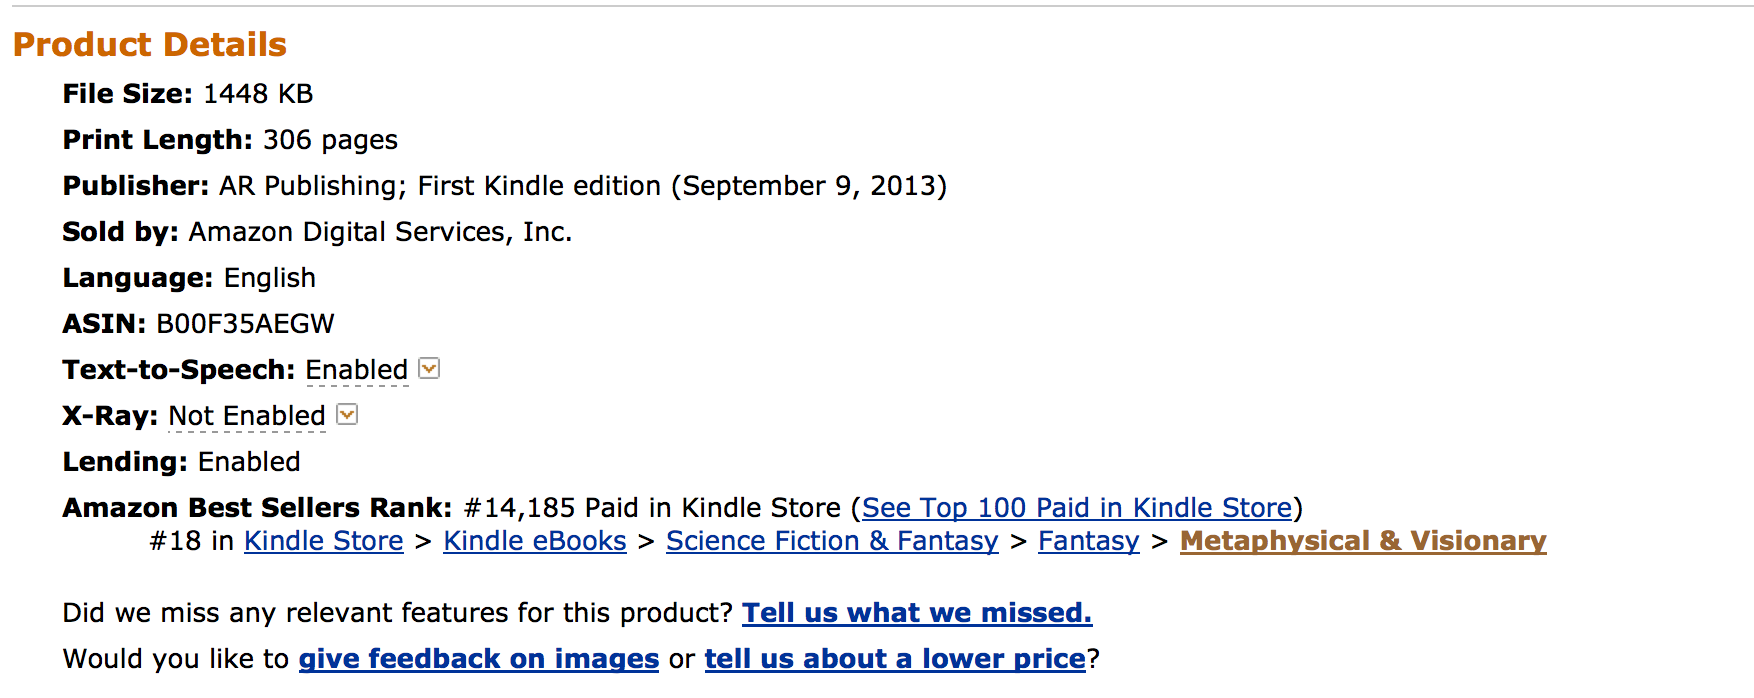 Ranking 18 on Amazon Best Seller List